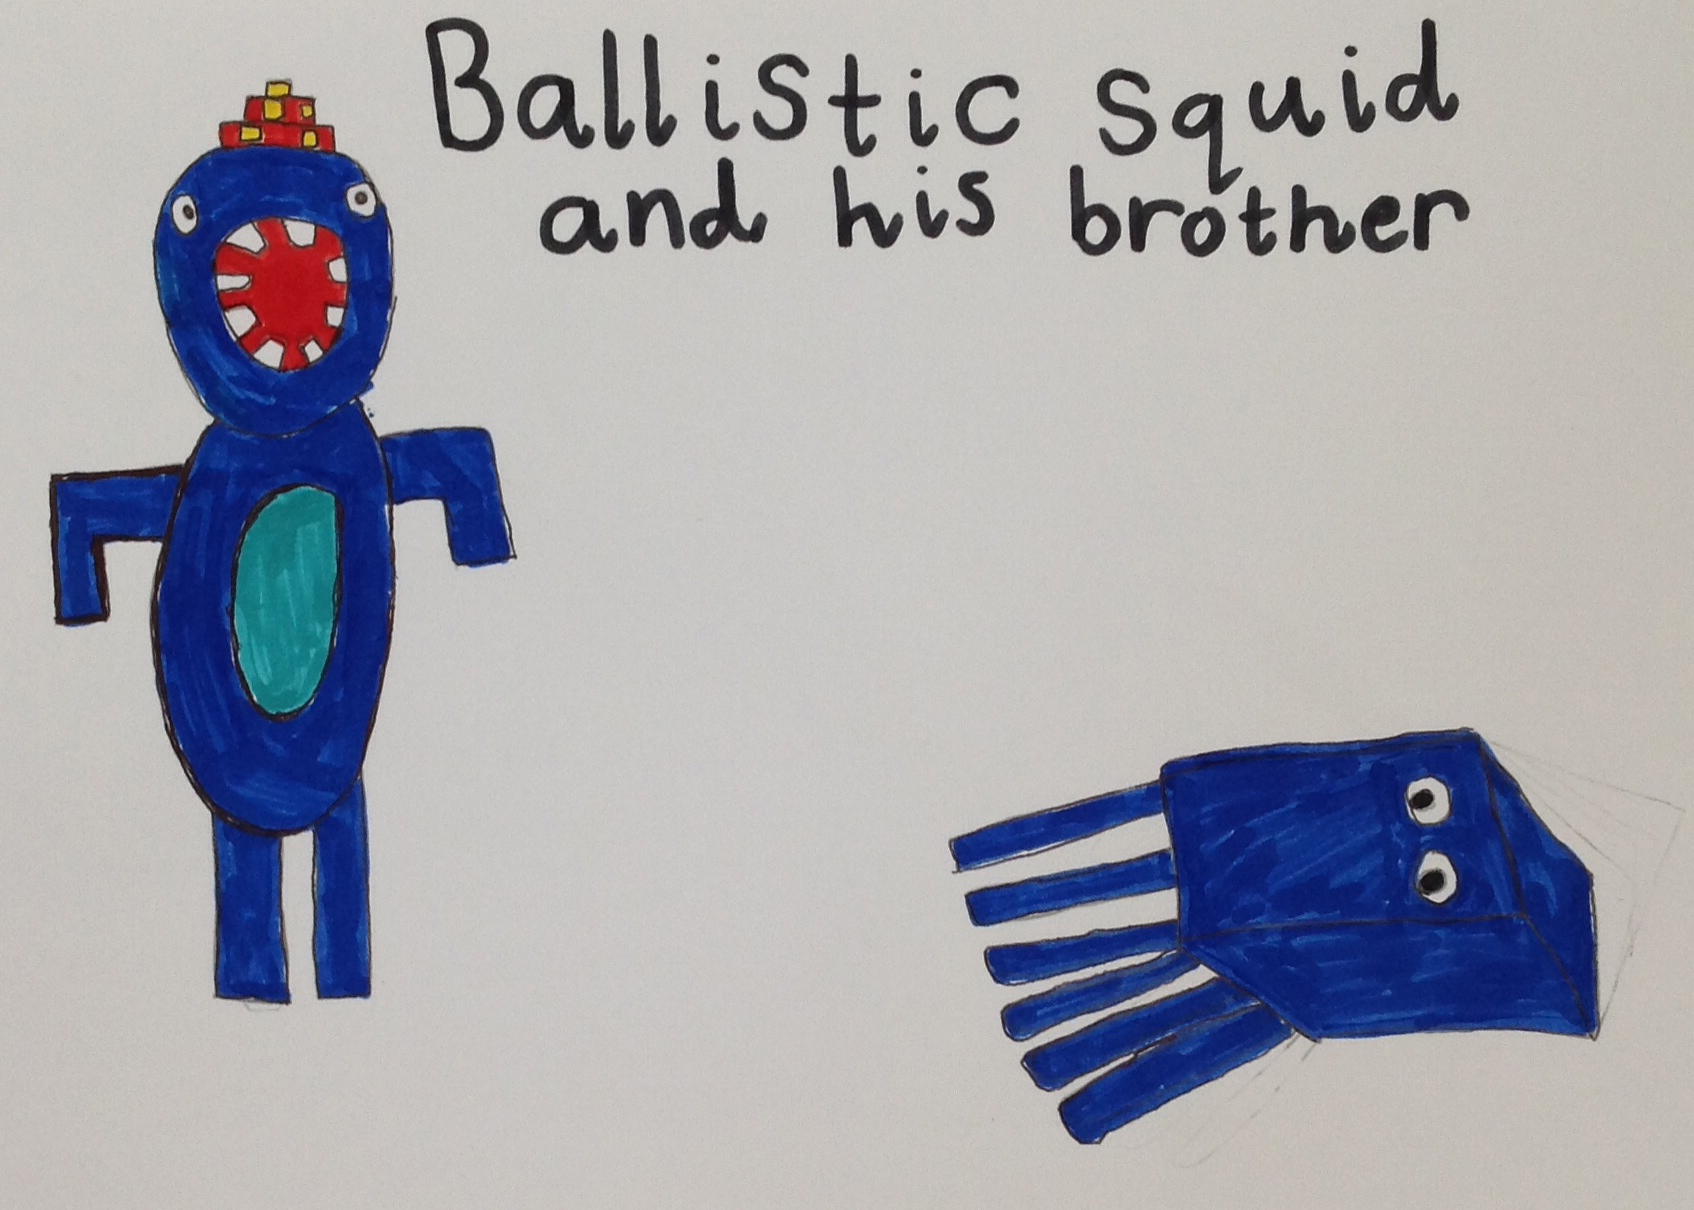 Ballistic Squid and his brother